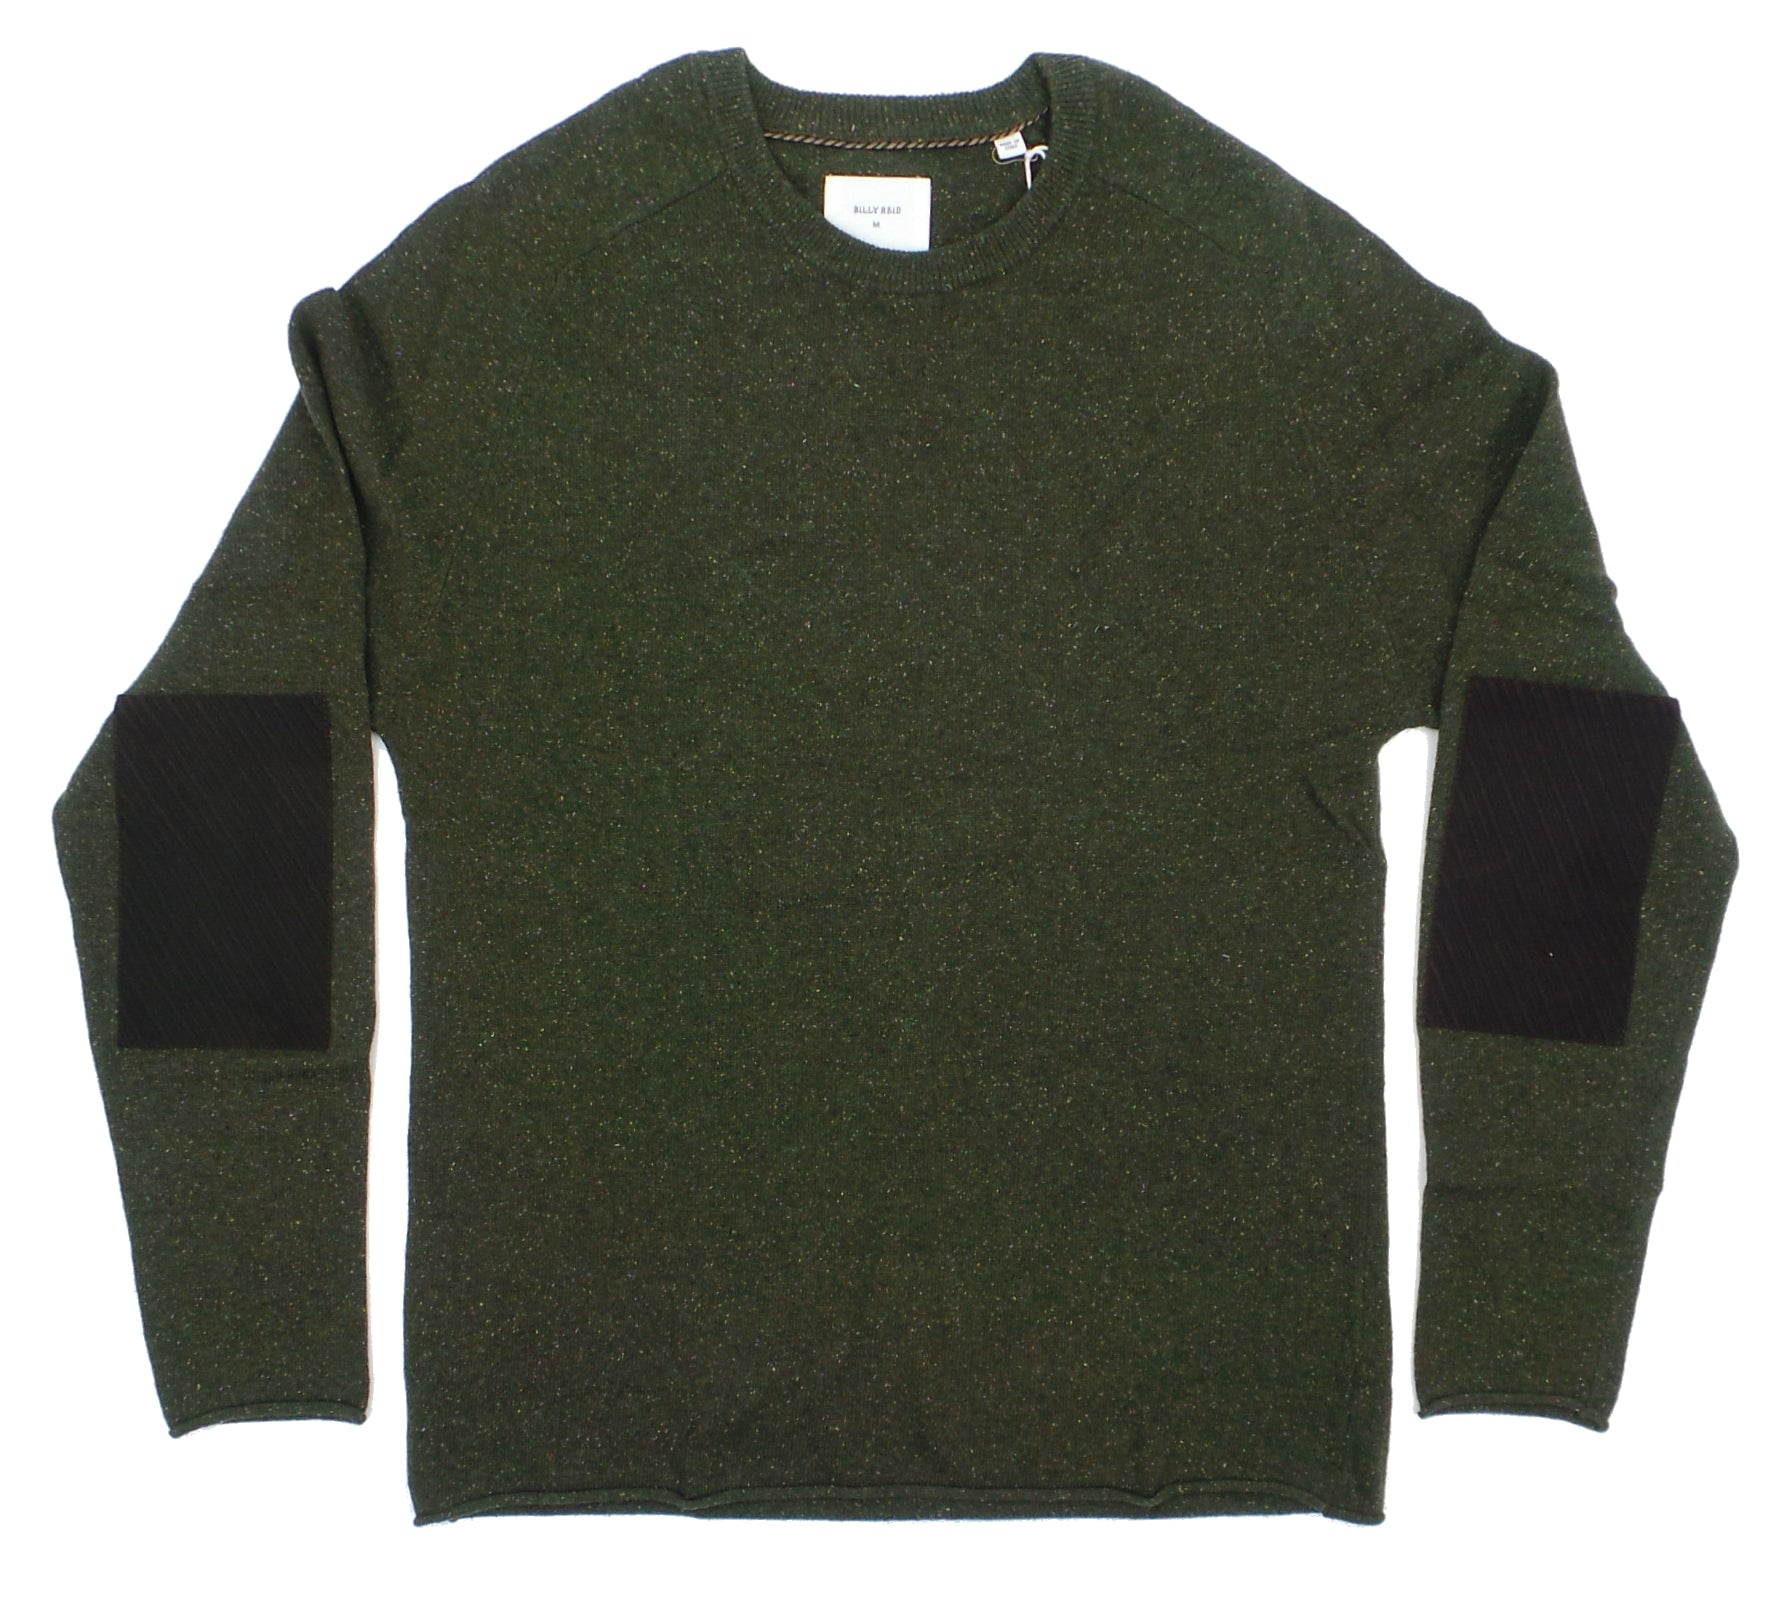 Billy Reid Heirloom Saddle Merino Blend Crew Neck Sweater